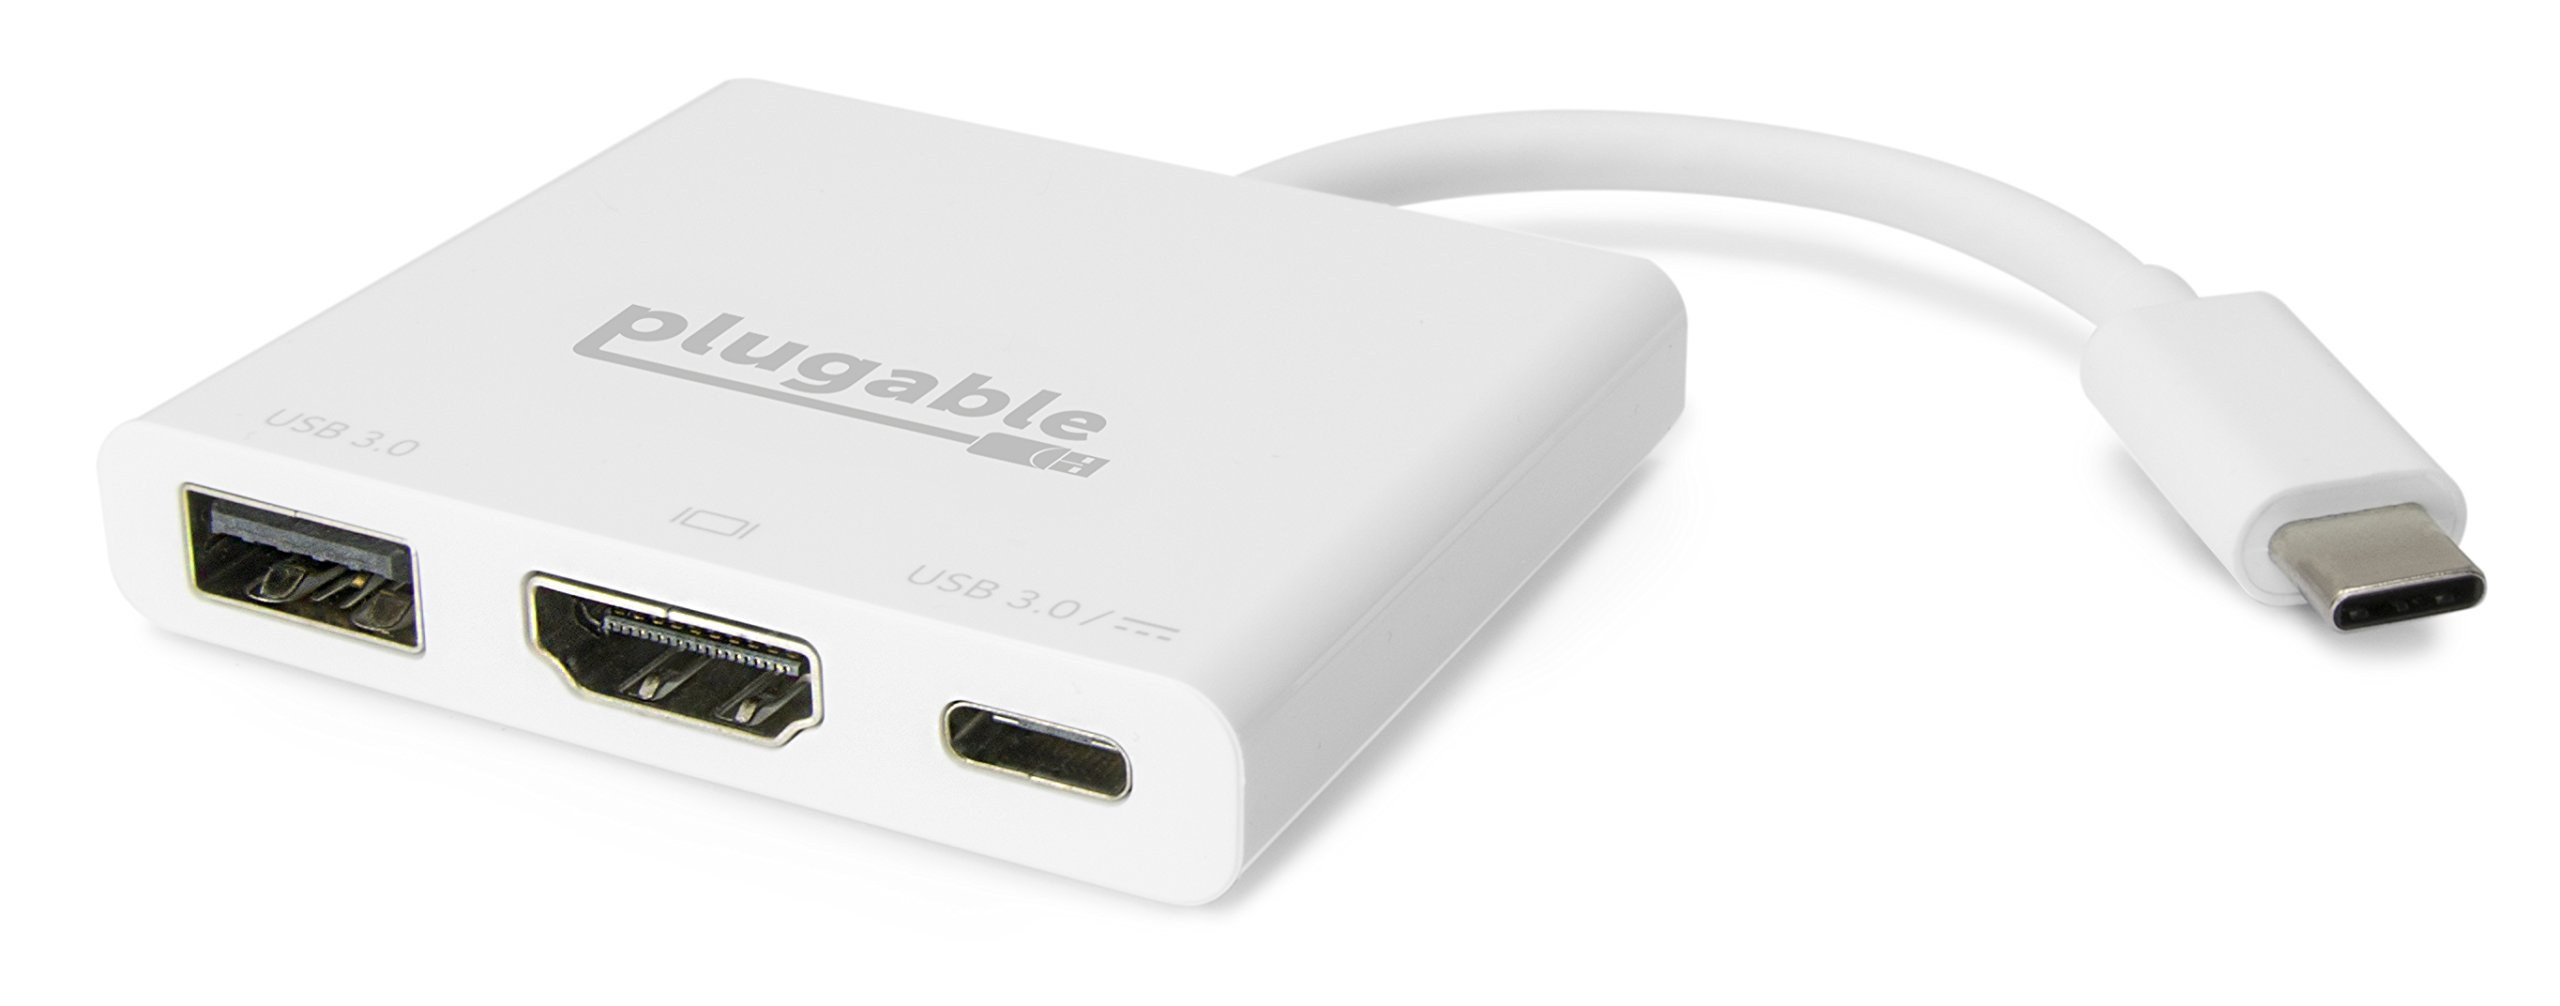 Plugable USB C Mini Dock (4K) - HDMI, USB 3.0 & Charging Capabilities